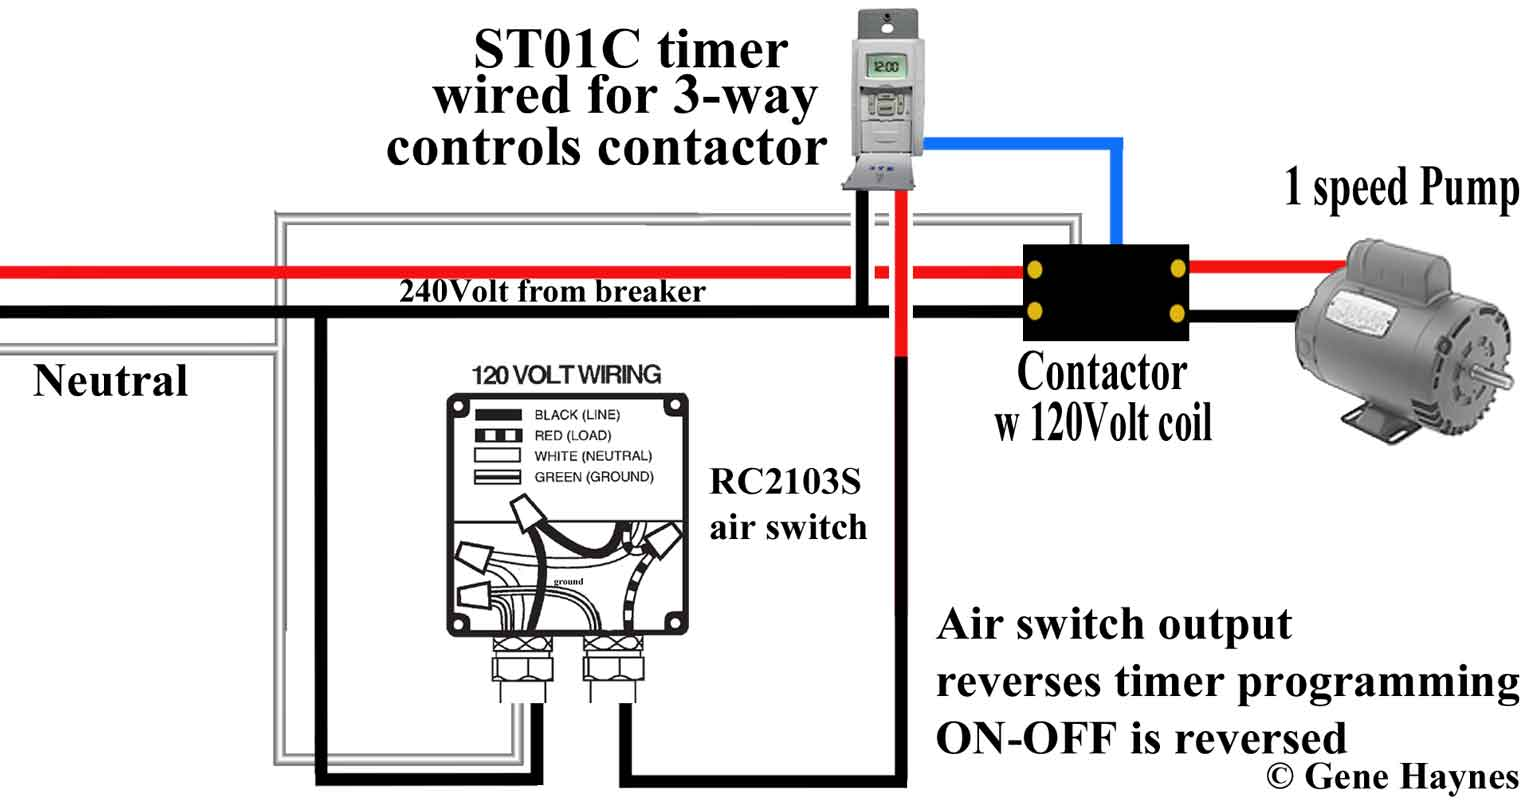 240 volt air switch Intermatic ST01C 800 override thermostat using programmable timer cn101a timer wiring diagram at gsmportal.co